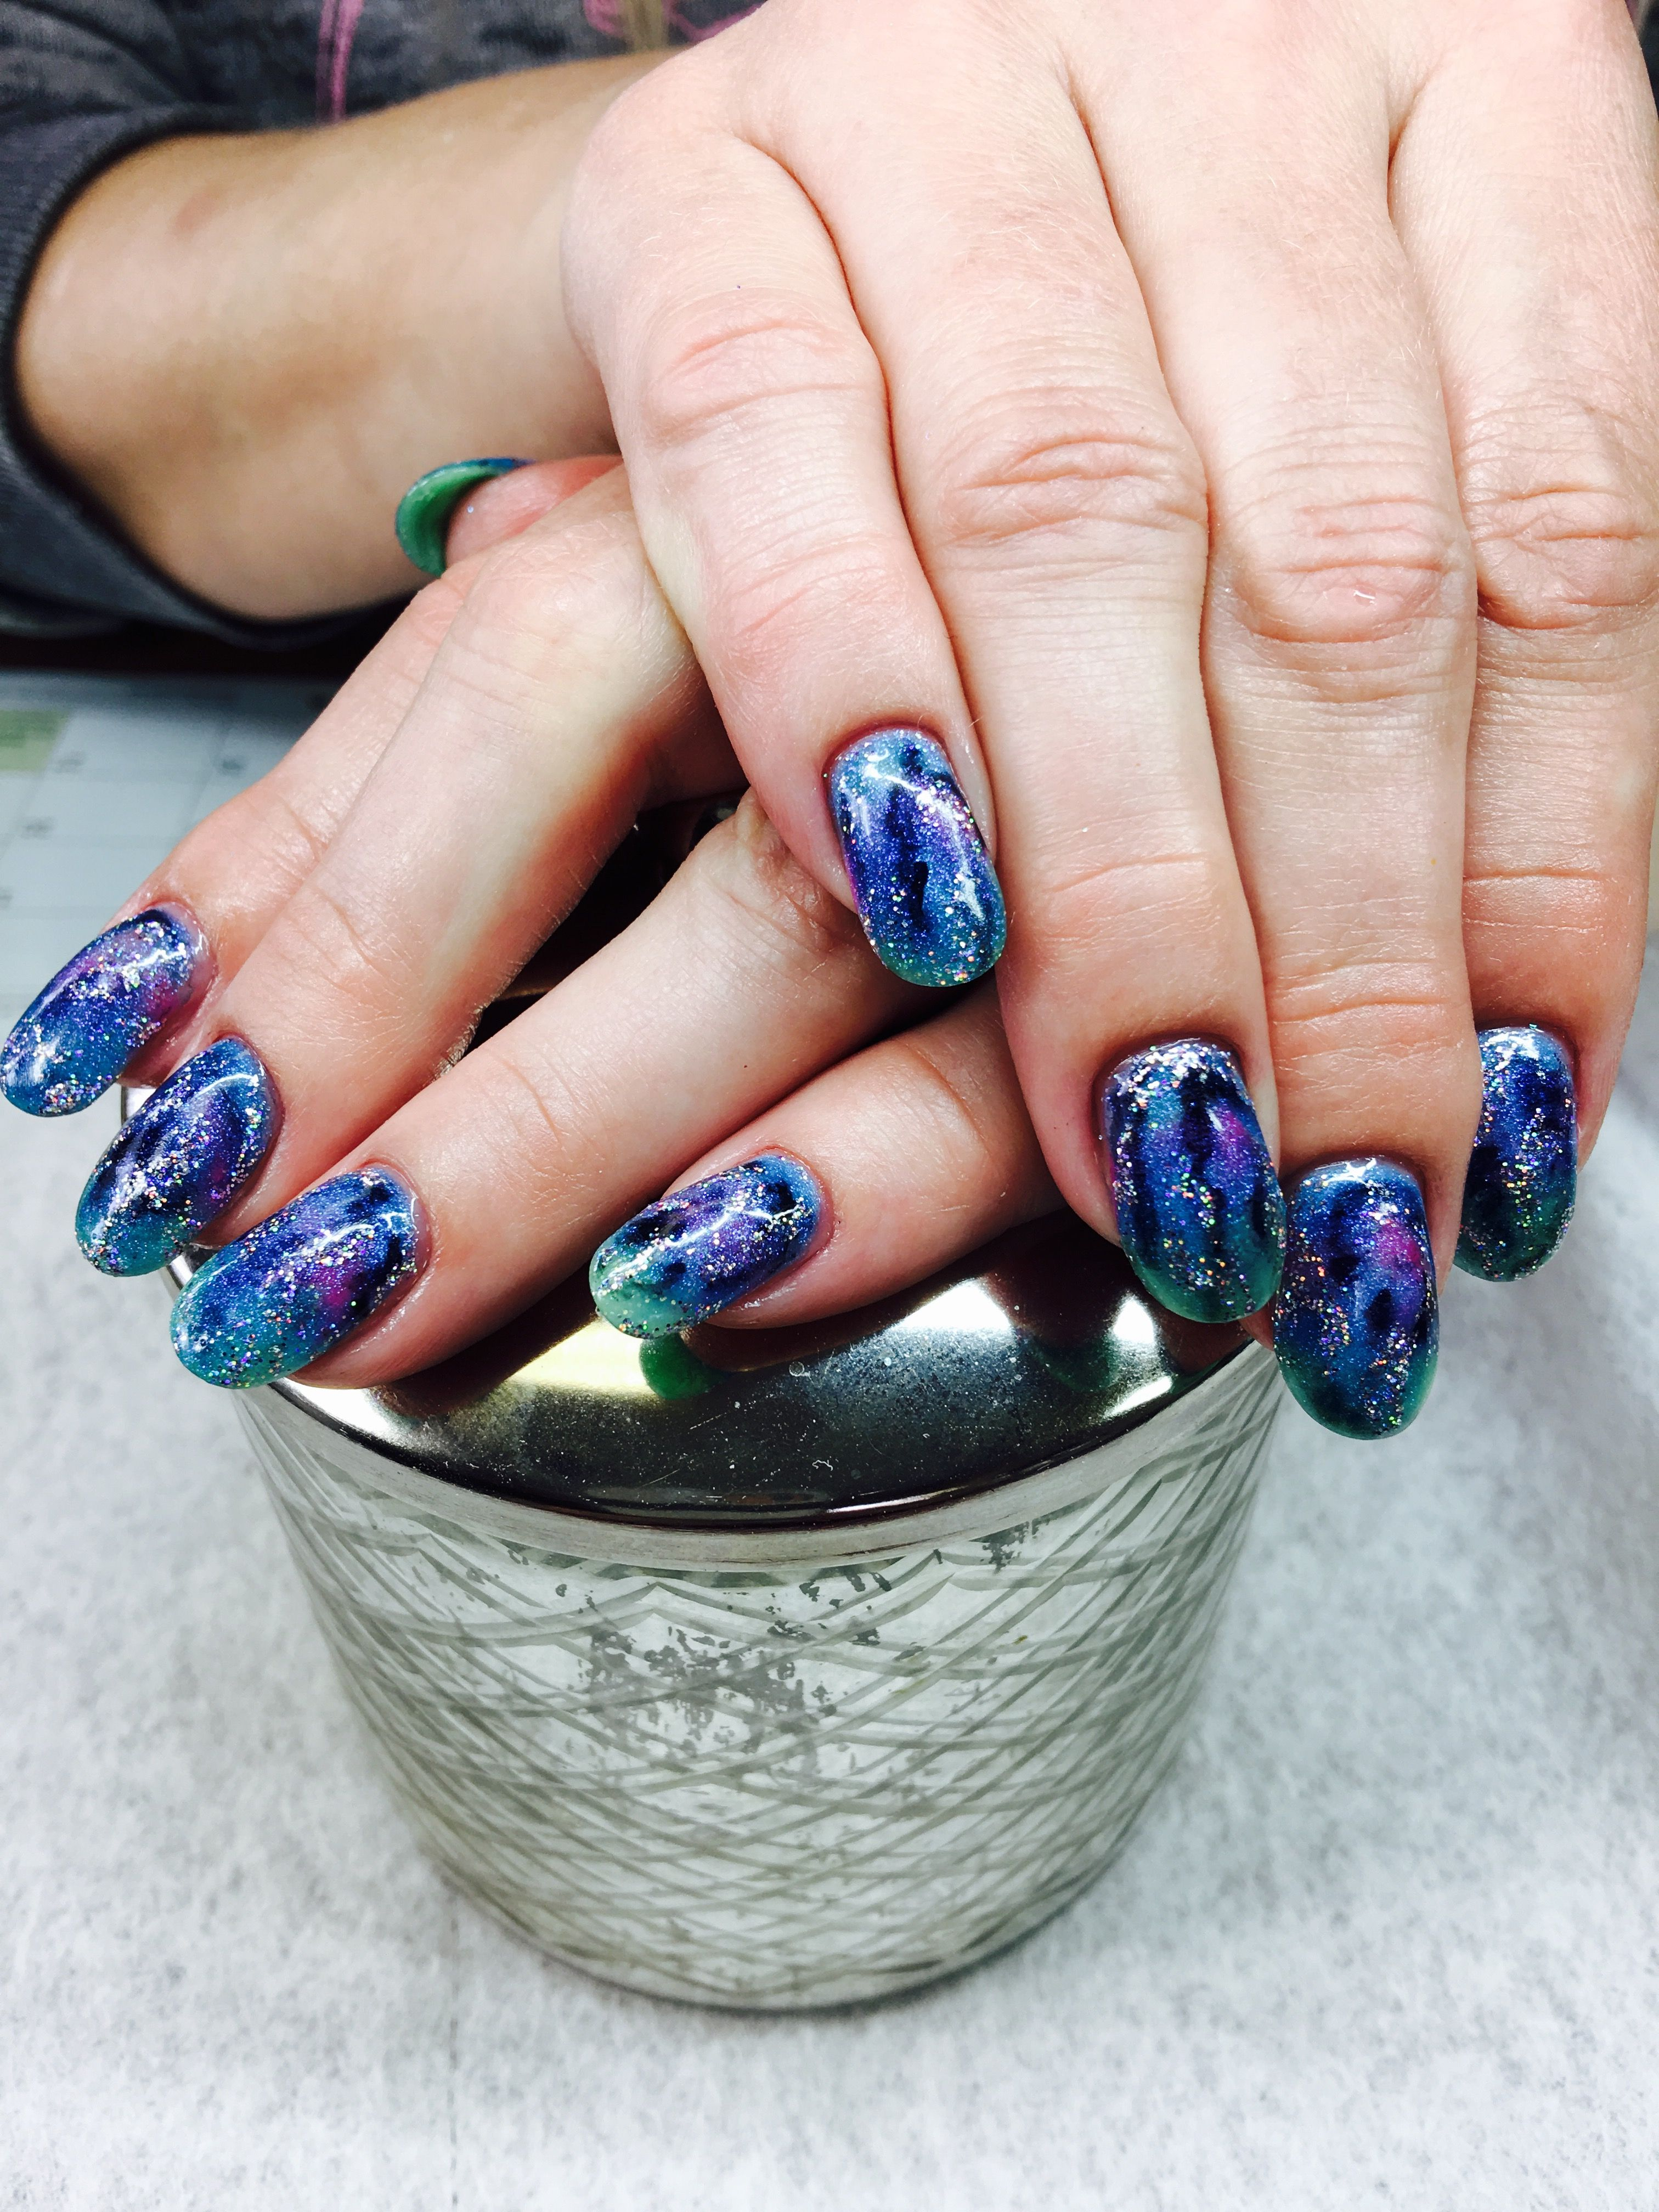 To the galaxy and beyond I love my nails! Thank you Exquisite nails ...